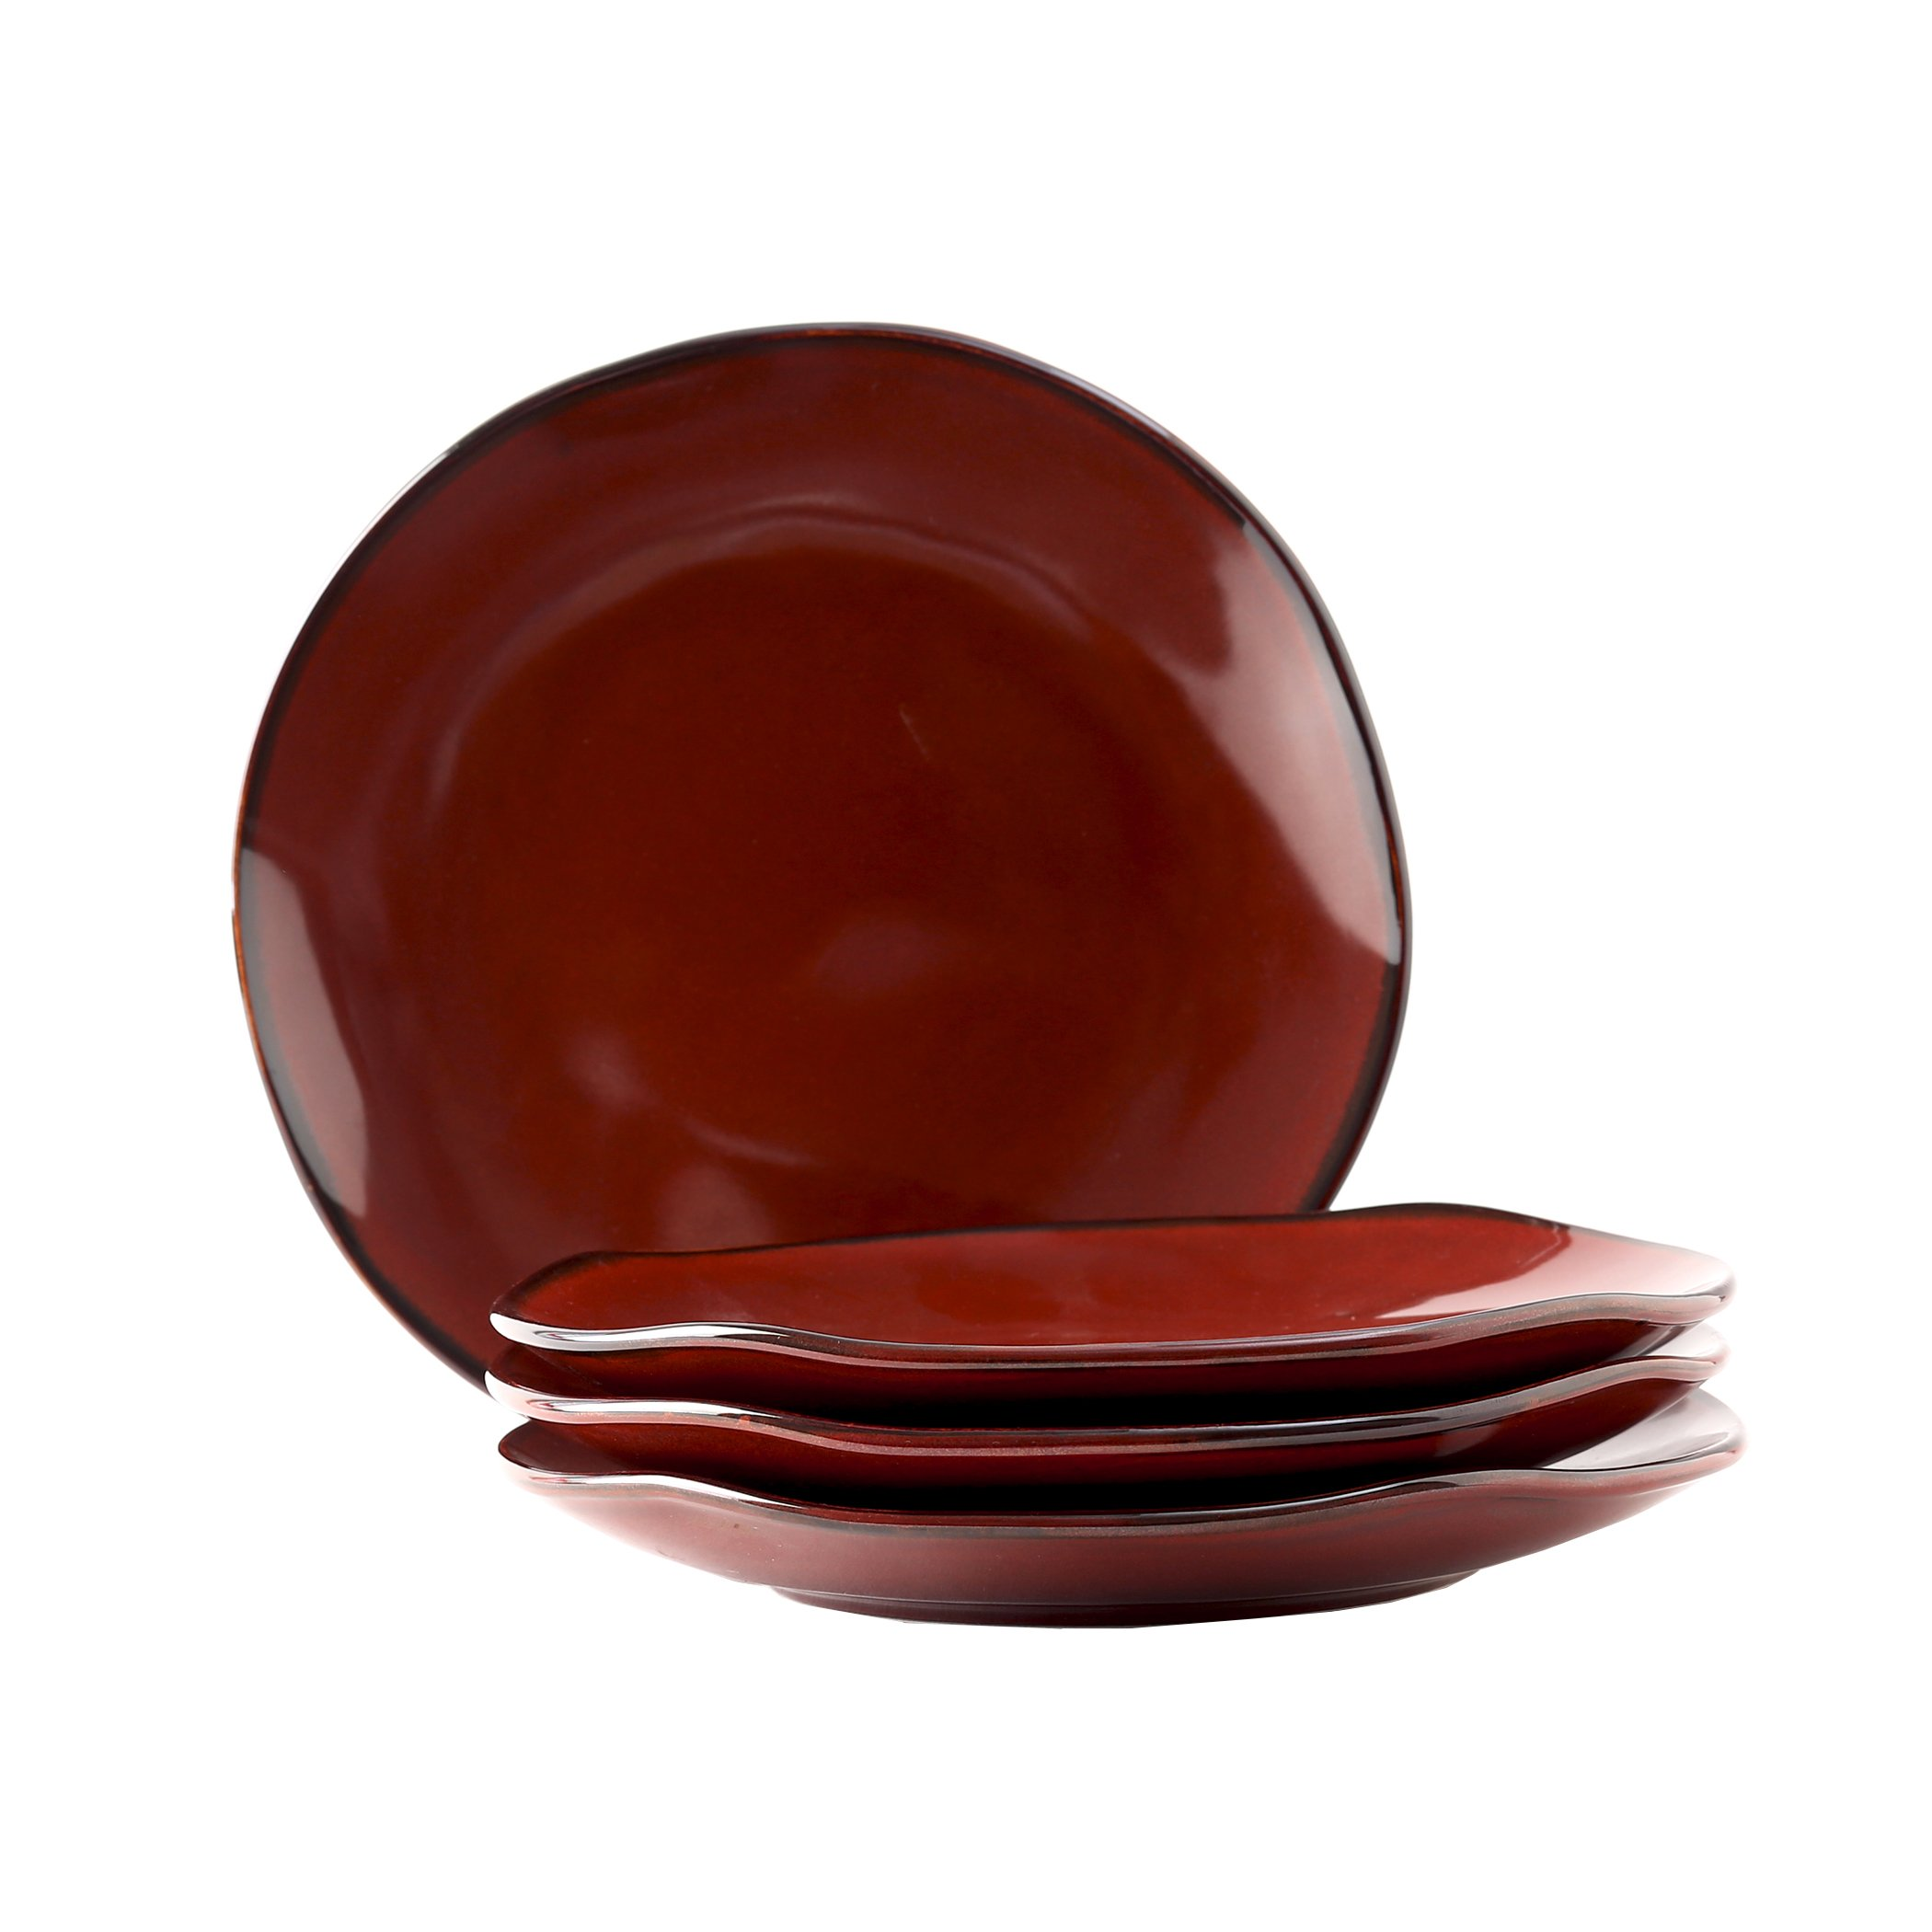 Tuxton Home Artisan Red Rock 10-1/4'' Round Reactive Glaze Dinner Plate - Set of 4; Heavy Duty; Chip Resistant; Lead and Cadmium Free; Freezer to Oven Safe up to 500F